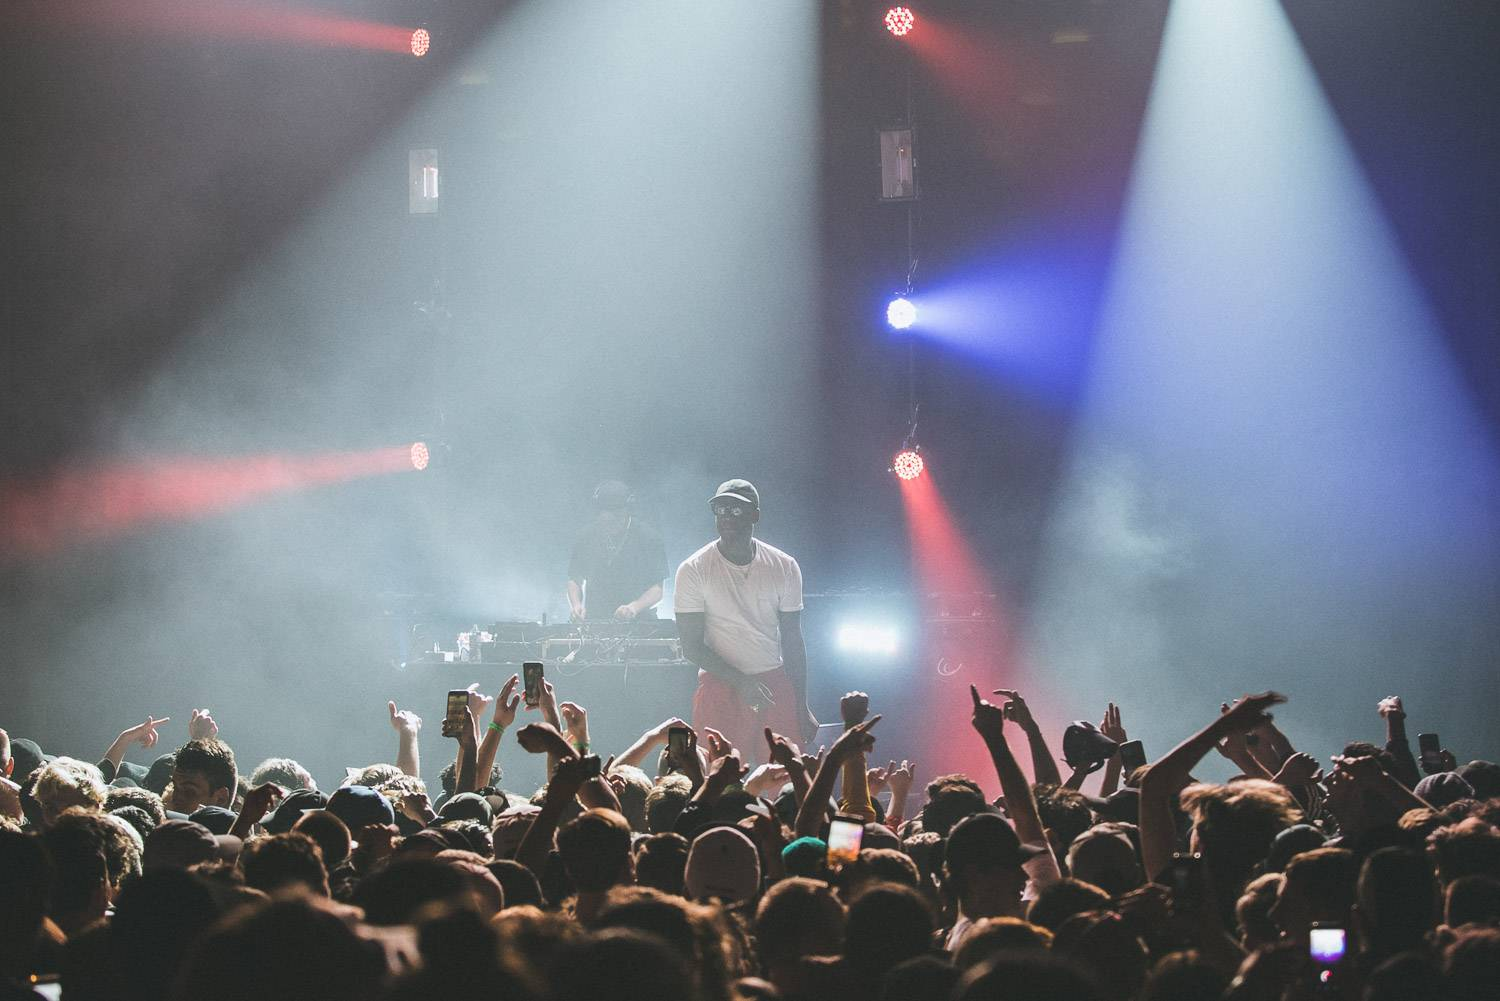 Skepta at The Vogue Theatre, Vancouver, Apr. 19 2017. Pavel Boiko photo.